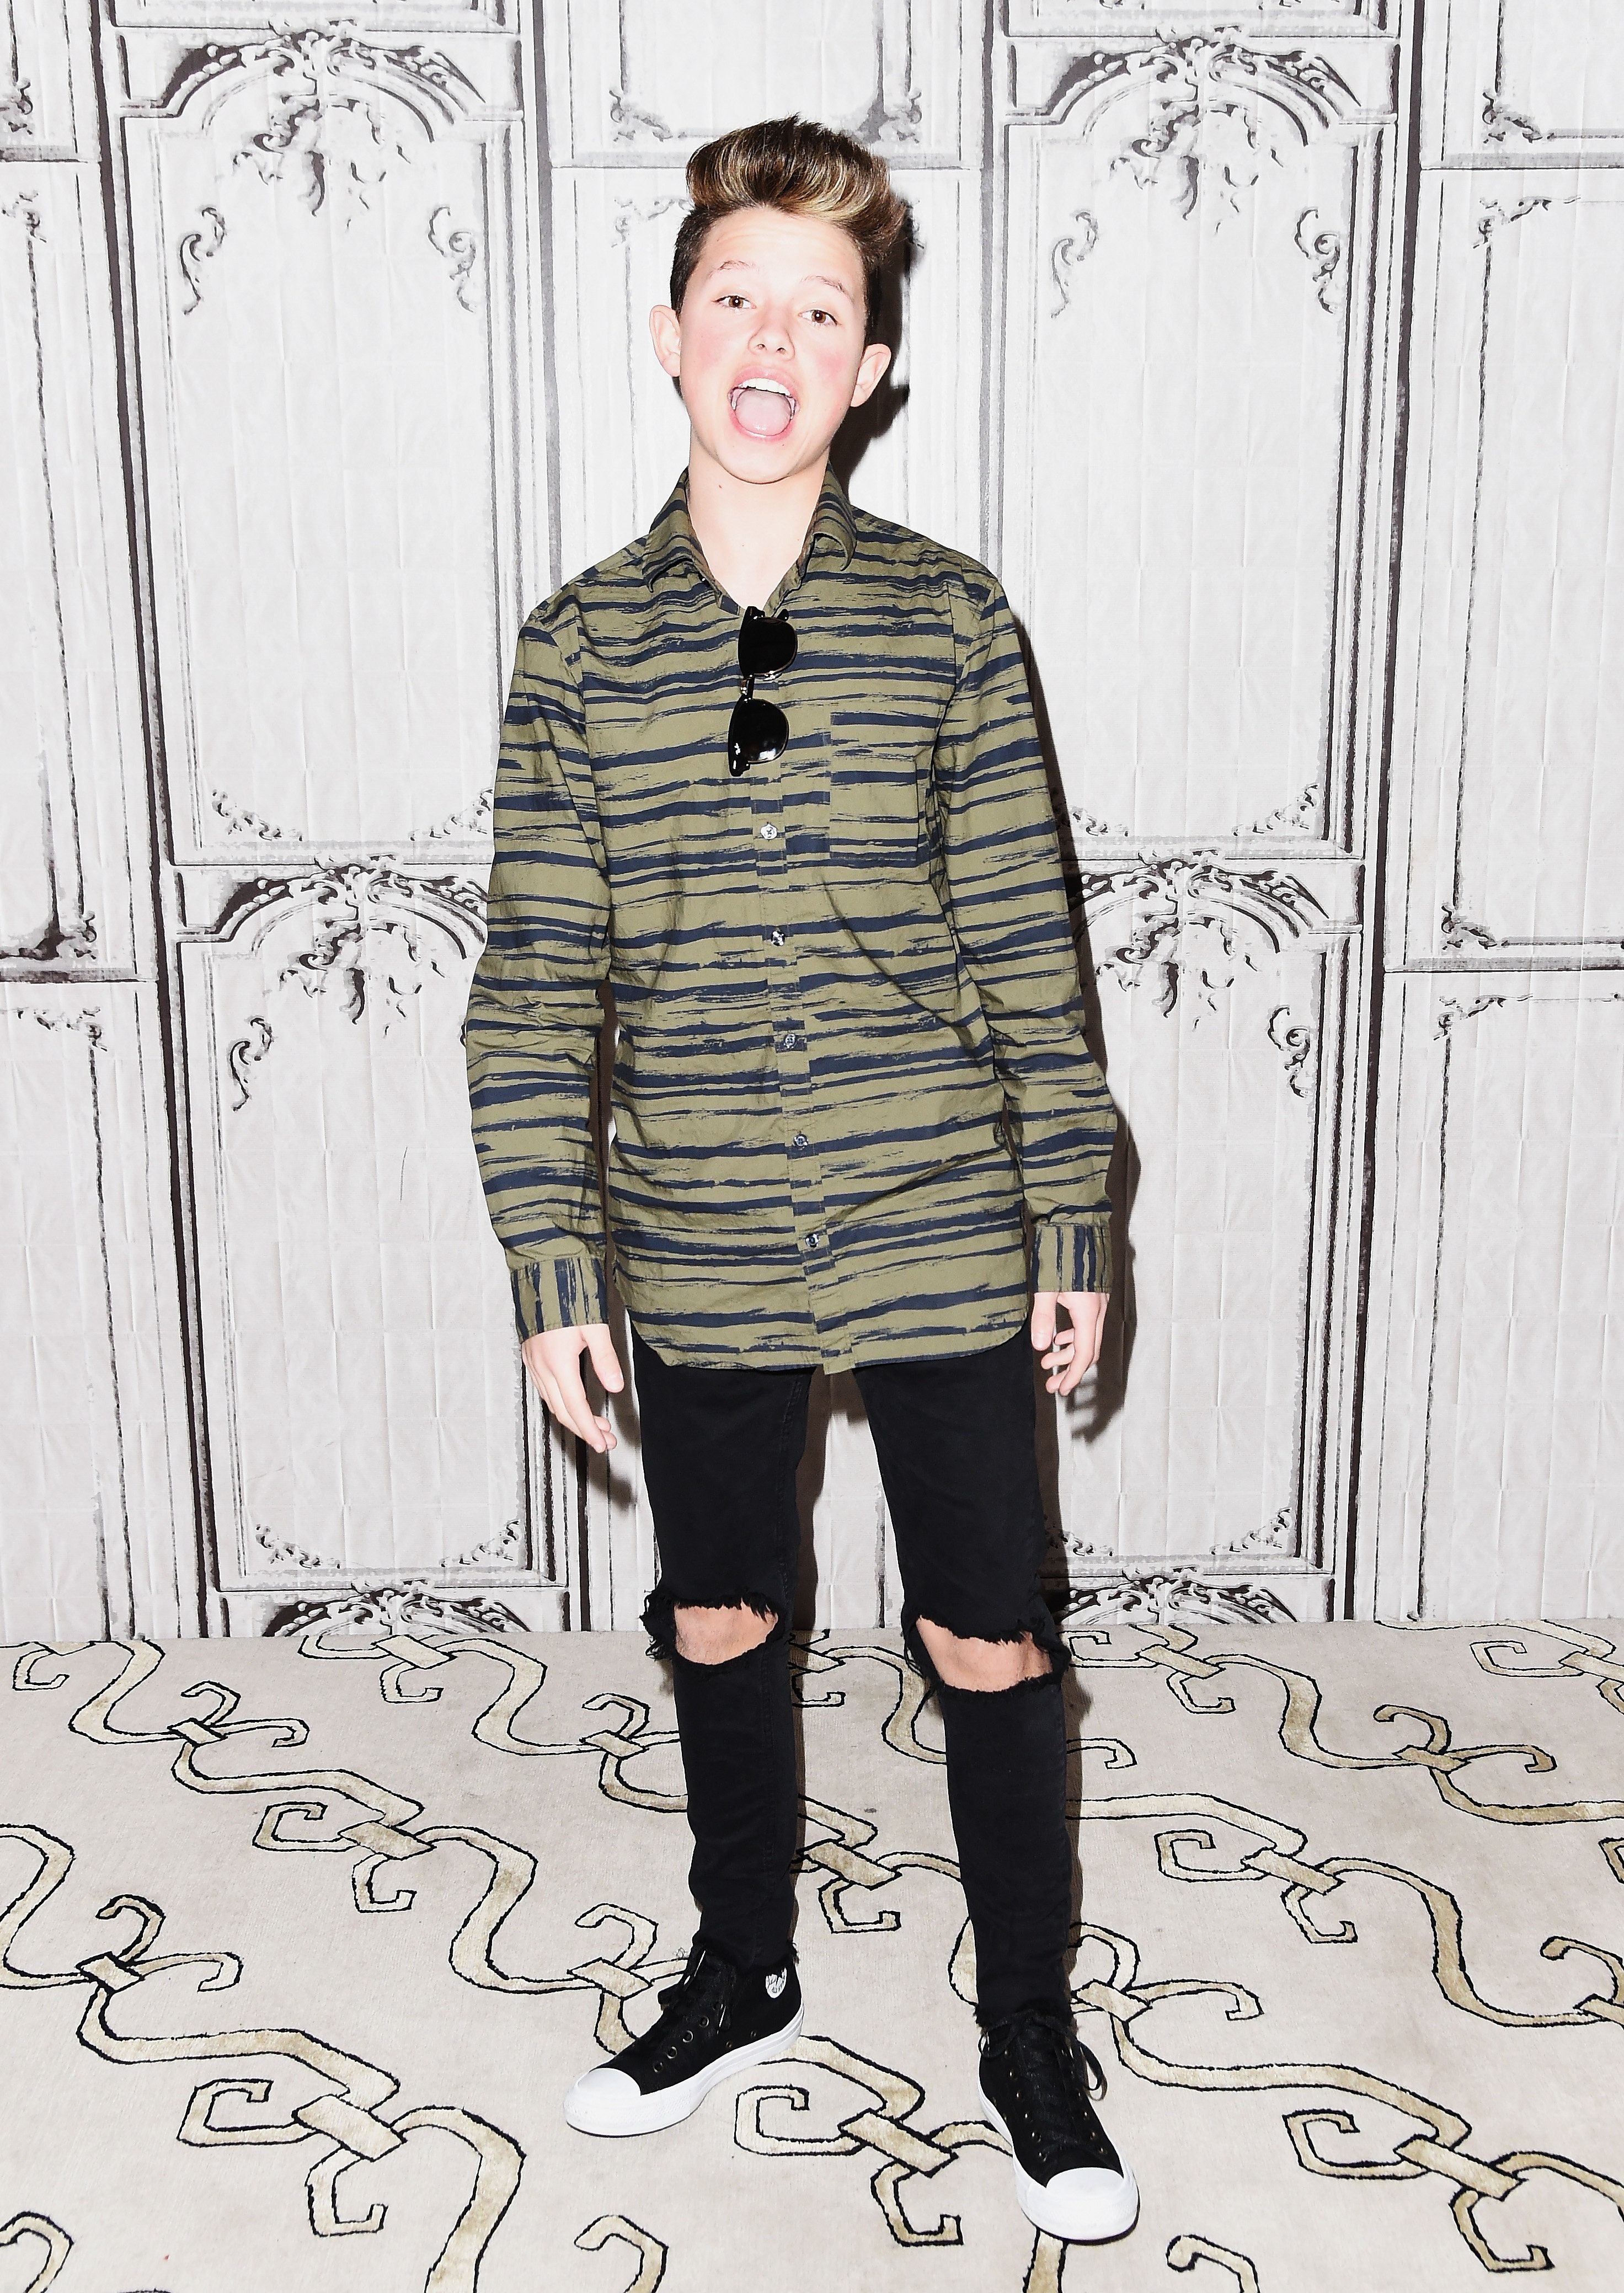 NEW YORK, NY - JANUARY 10:  YouTube Sensation Jacob Sartorius attends the Build Presents Discussing his new album 'The Last Text World Tour' at AOL HQ on January 10, 2017 in New York City.  (Photo by Nicholas Hunt/Getty Images)